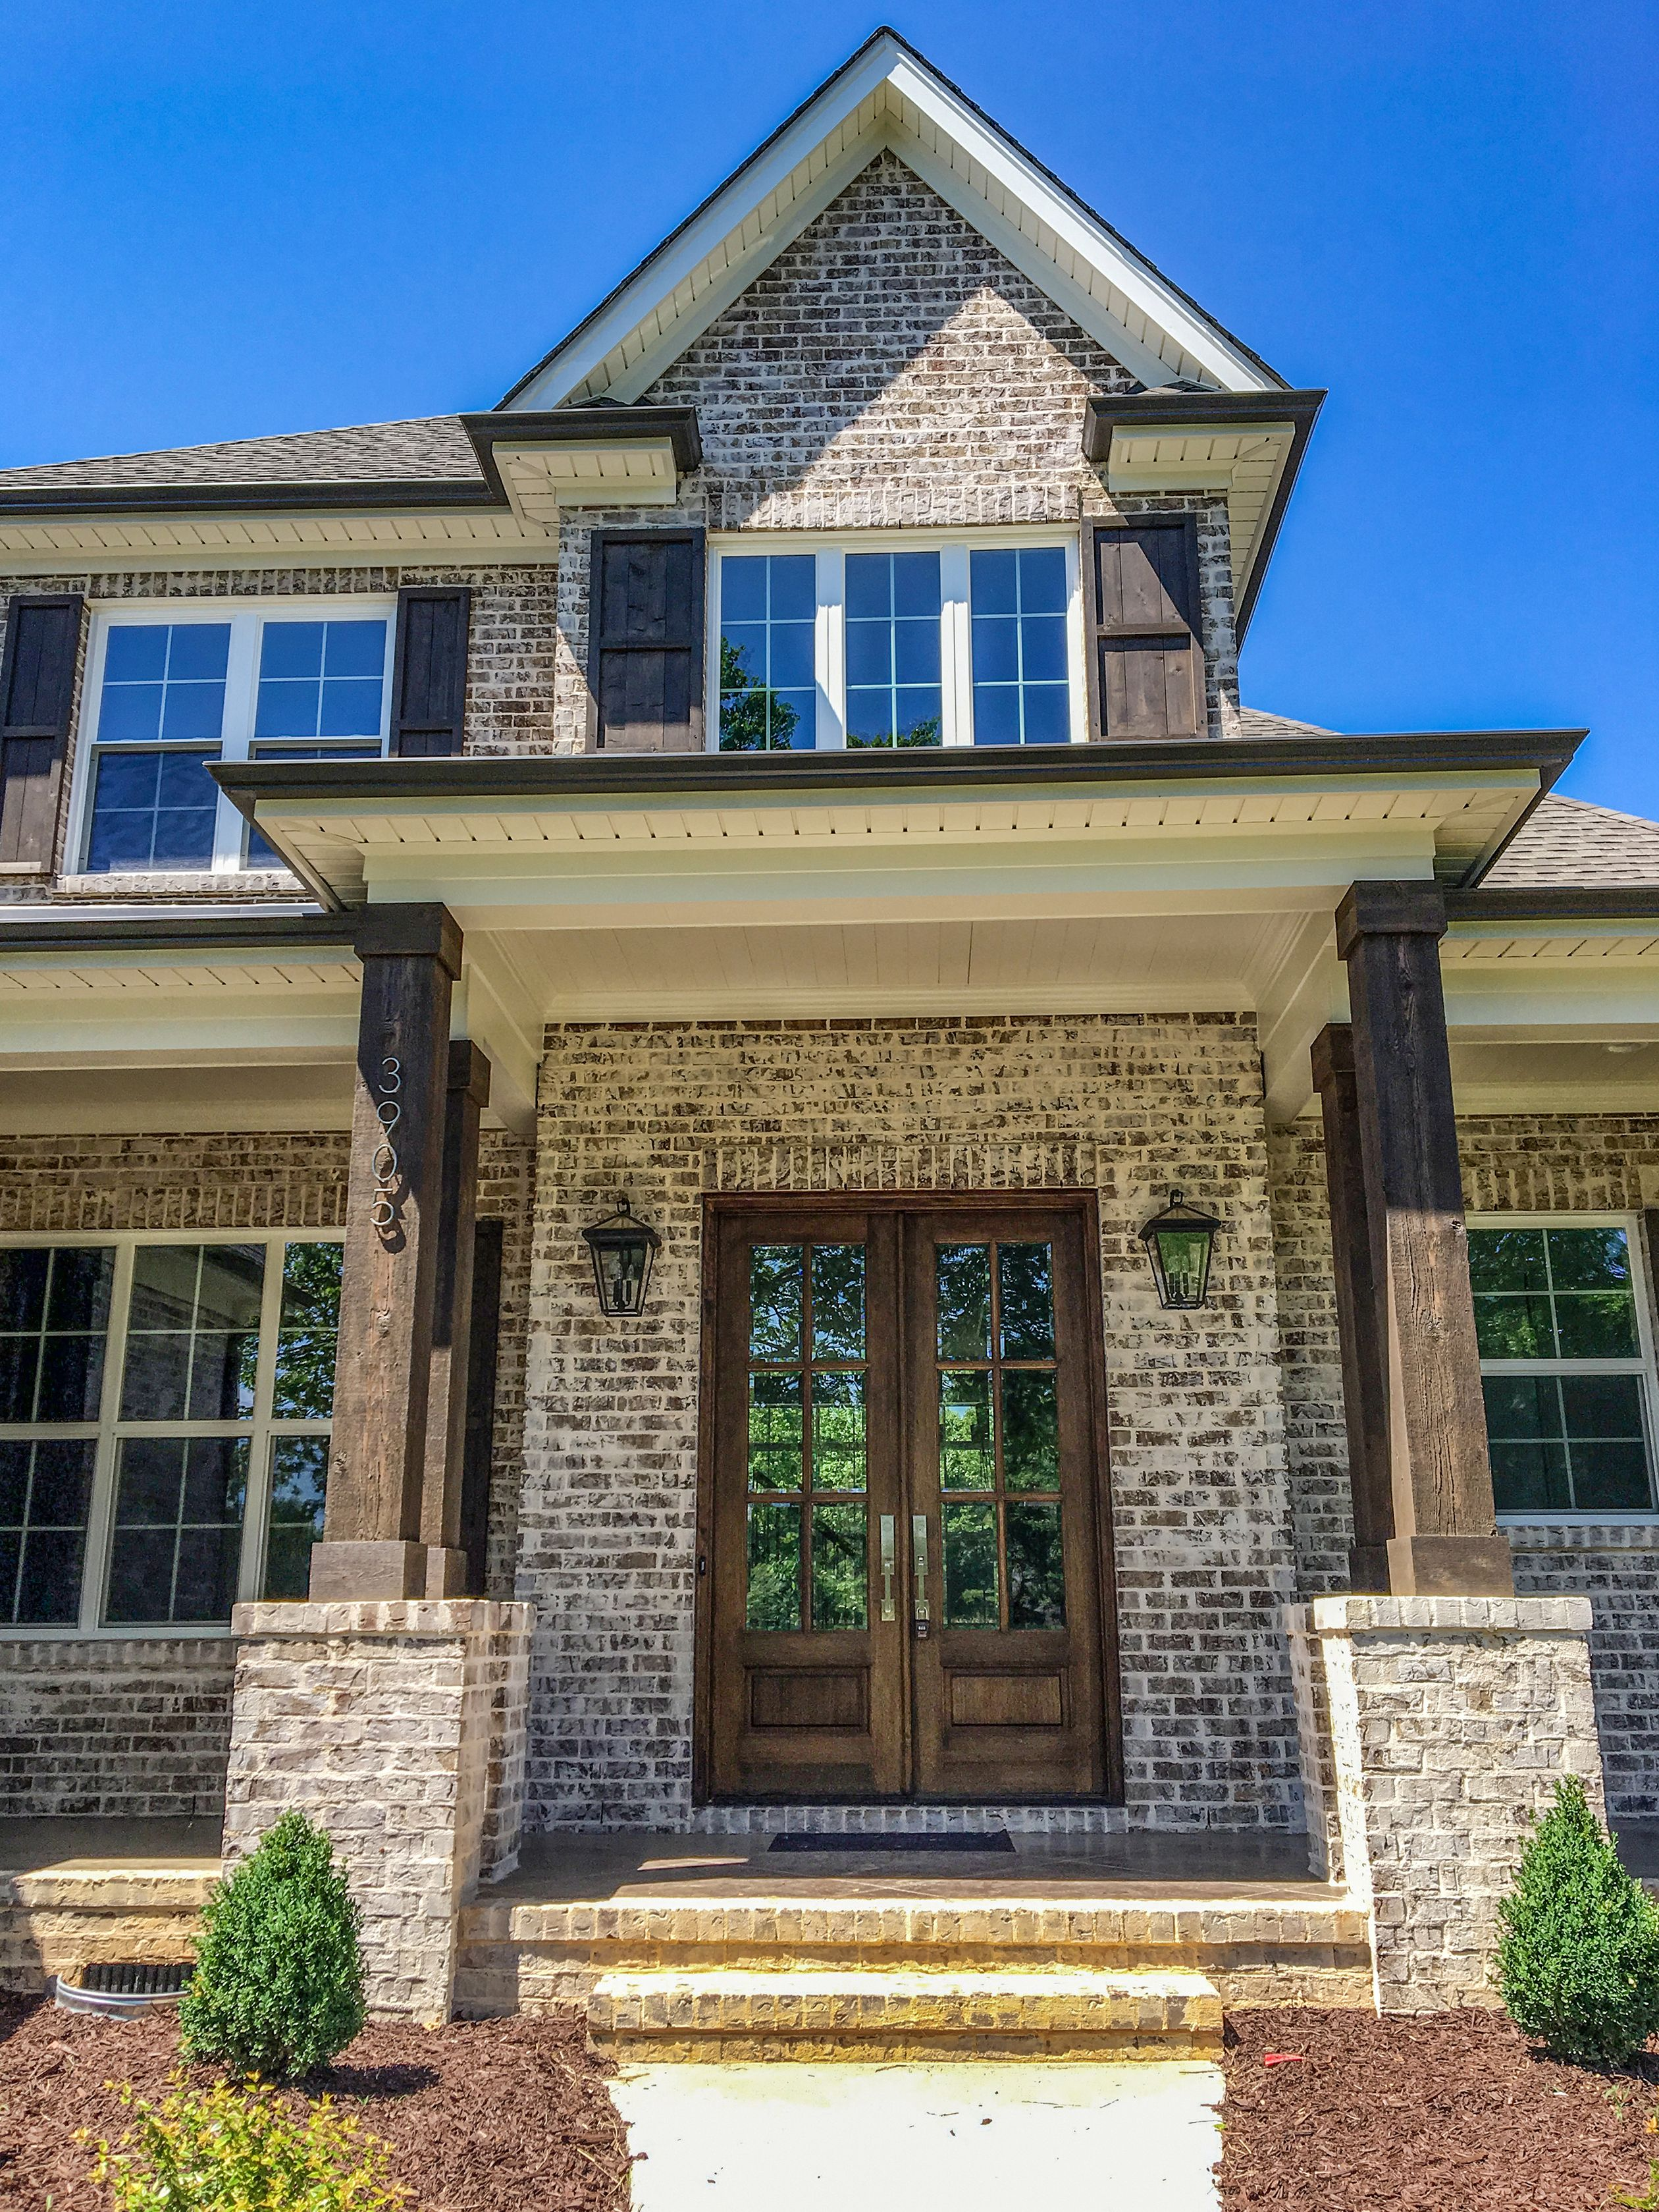 German House Designs: Get The Exterior Look You Want! Shown Here: Ashton Court